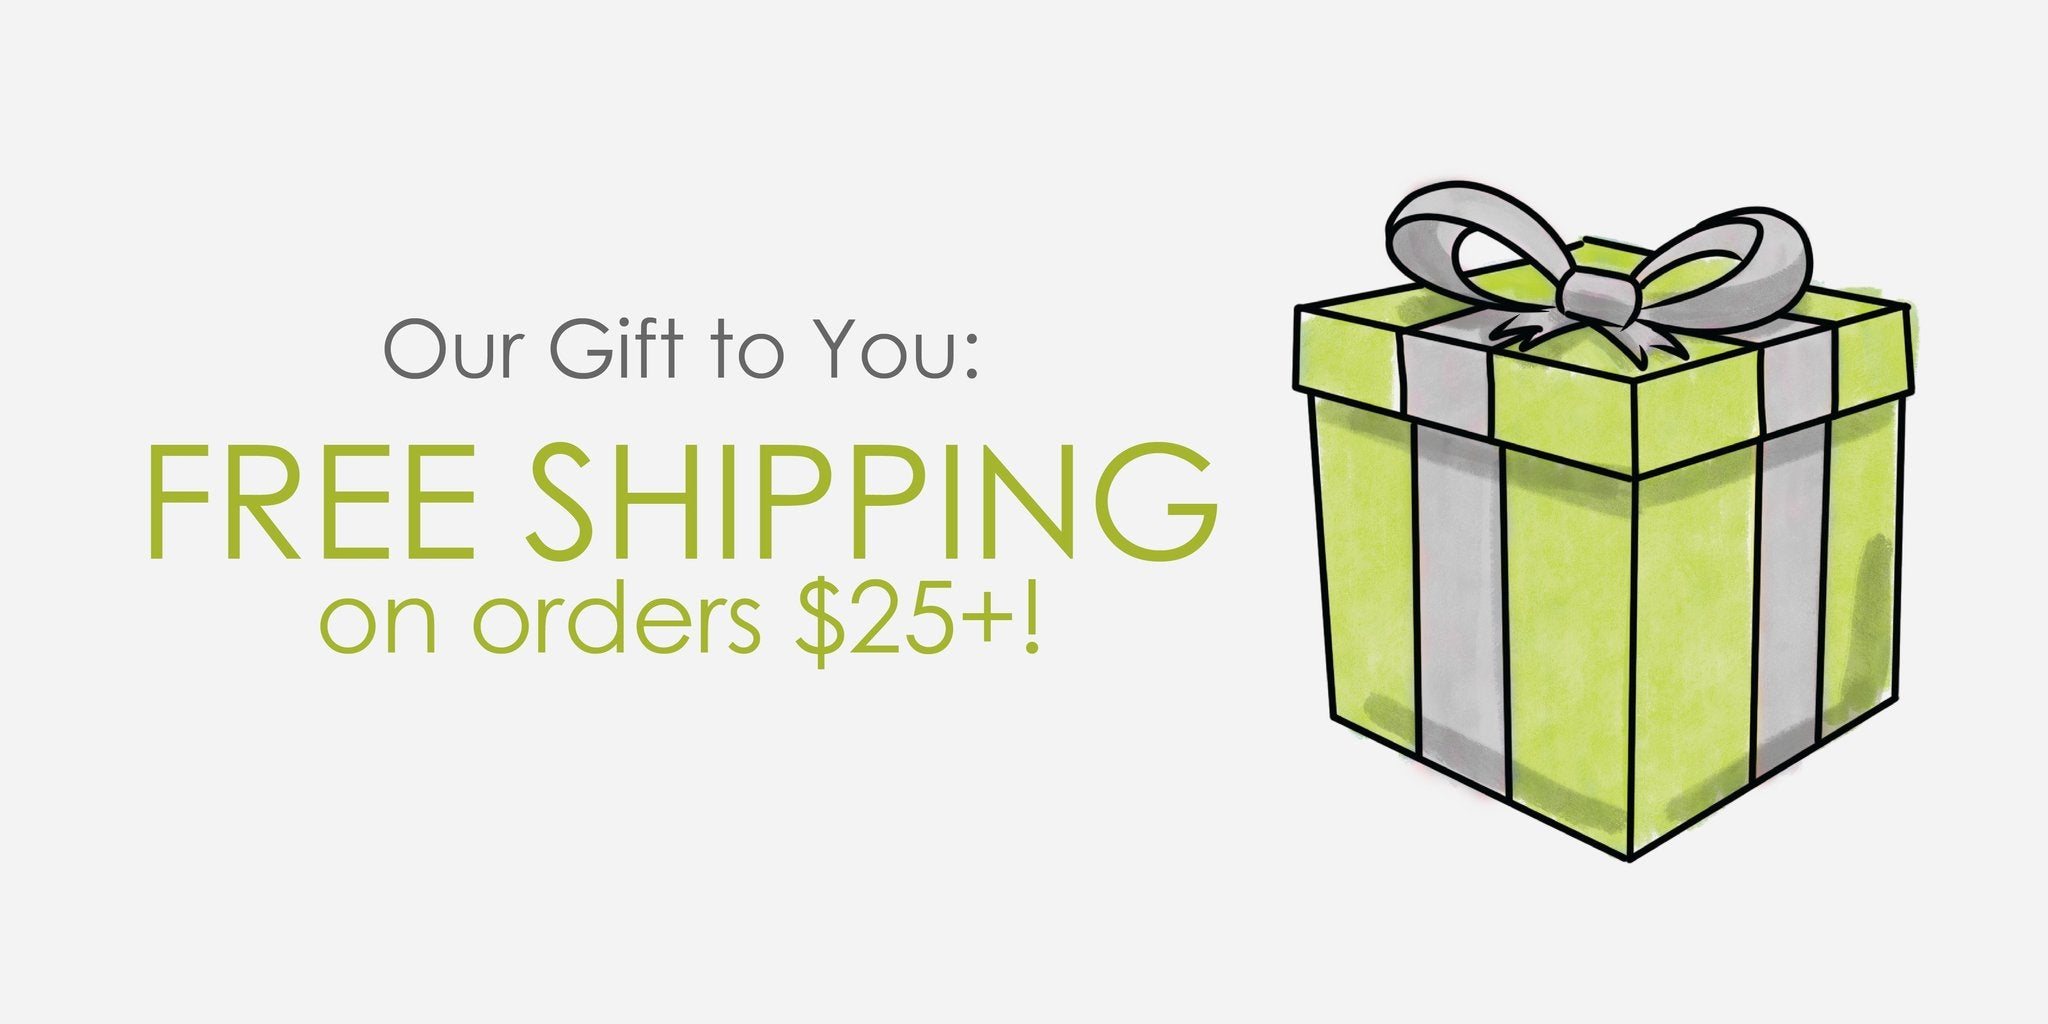 Free Shipping for orders $25+